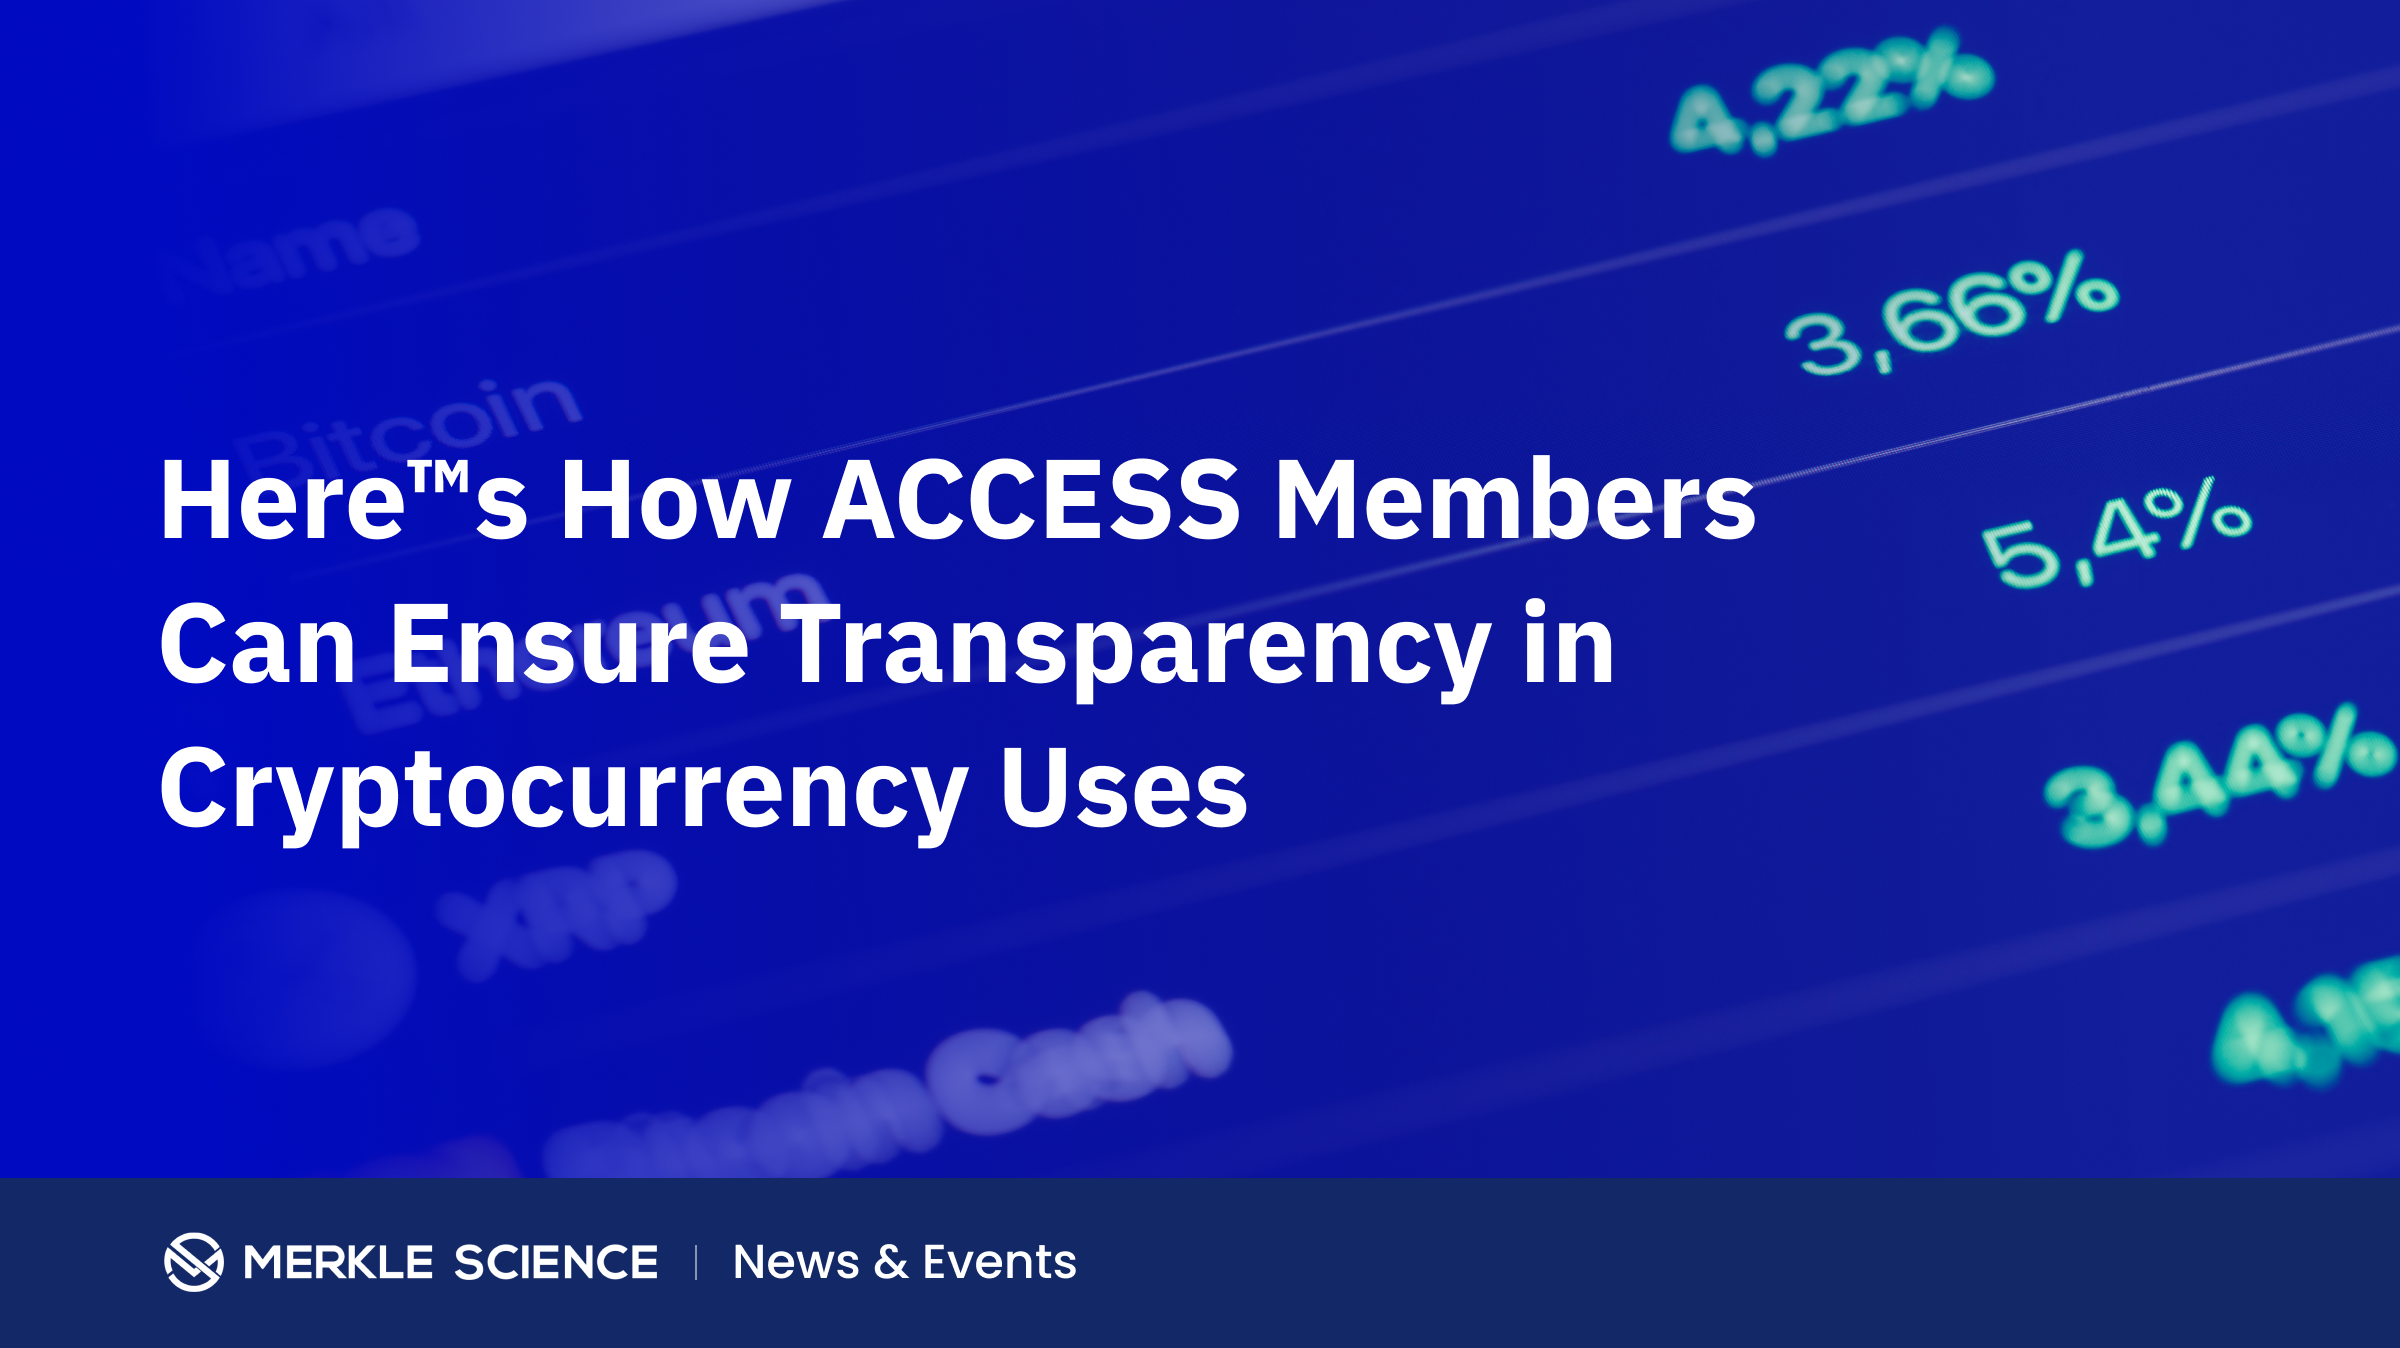 ACCESS Members Can Ensure Transparency in Cryptocurrency Uses